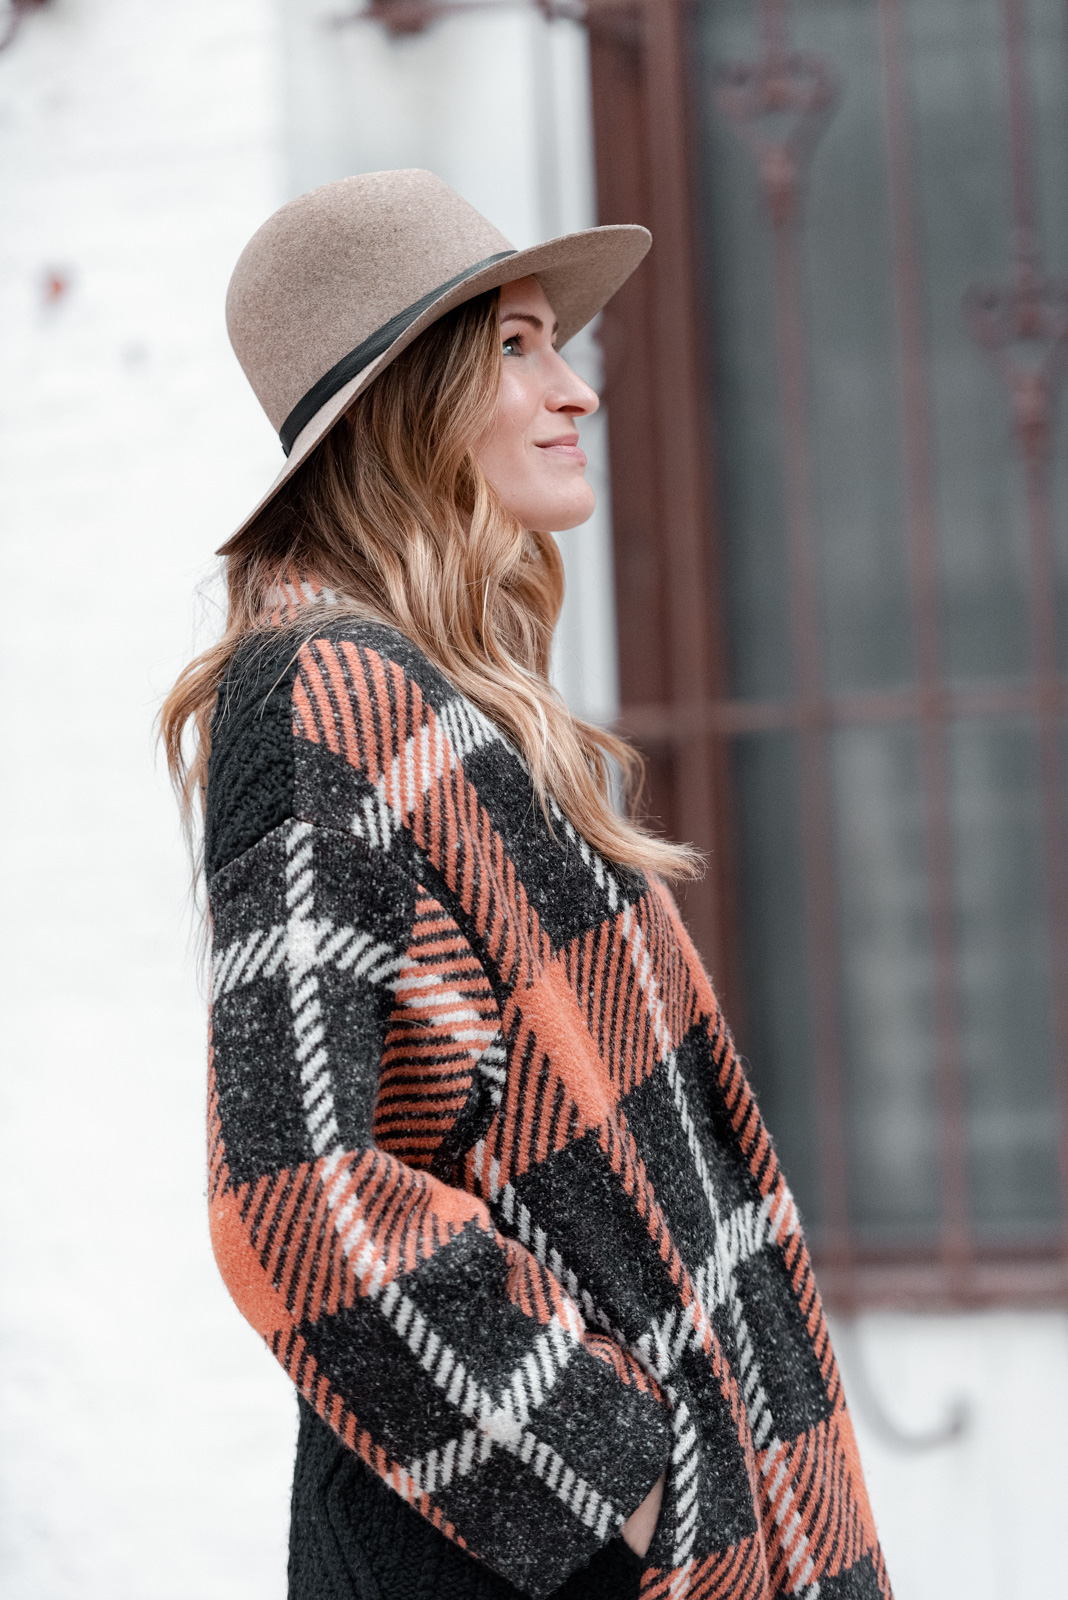 Laura Behnke The Life Actually Company (nude) Sweater jacket, Janessa Leone hat